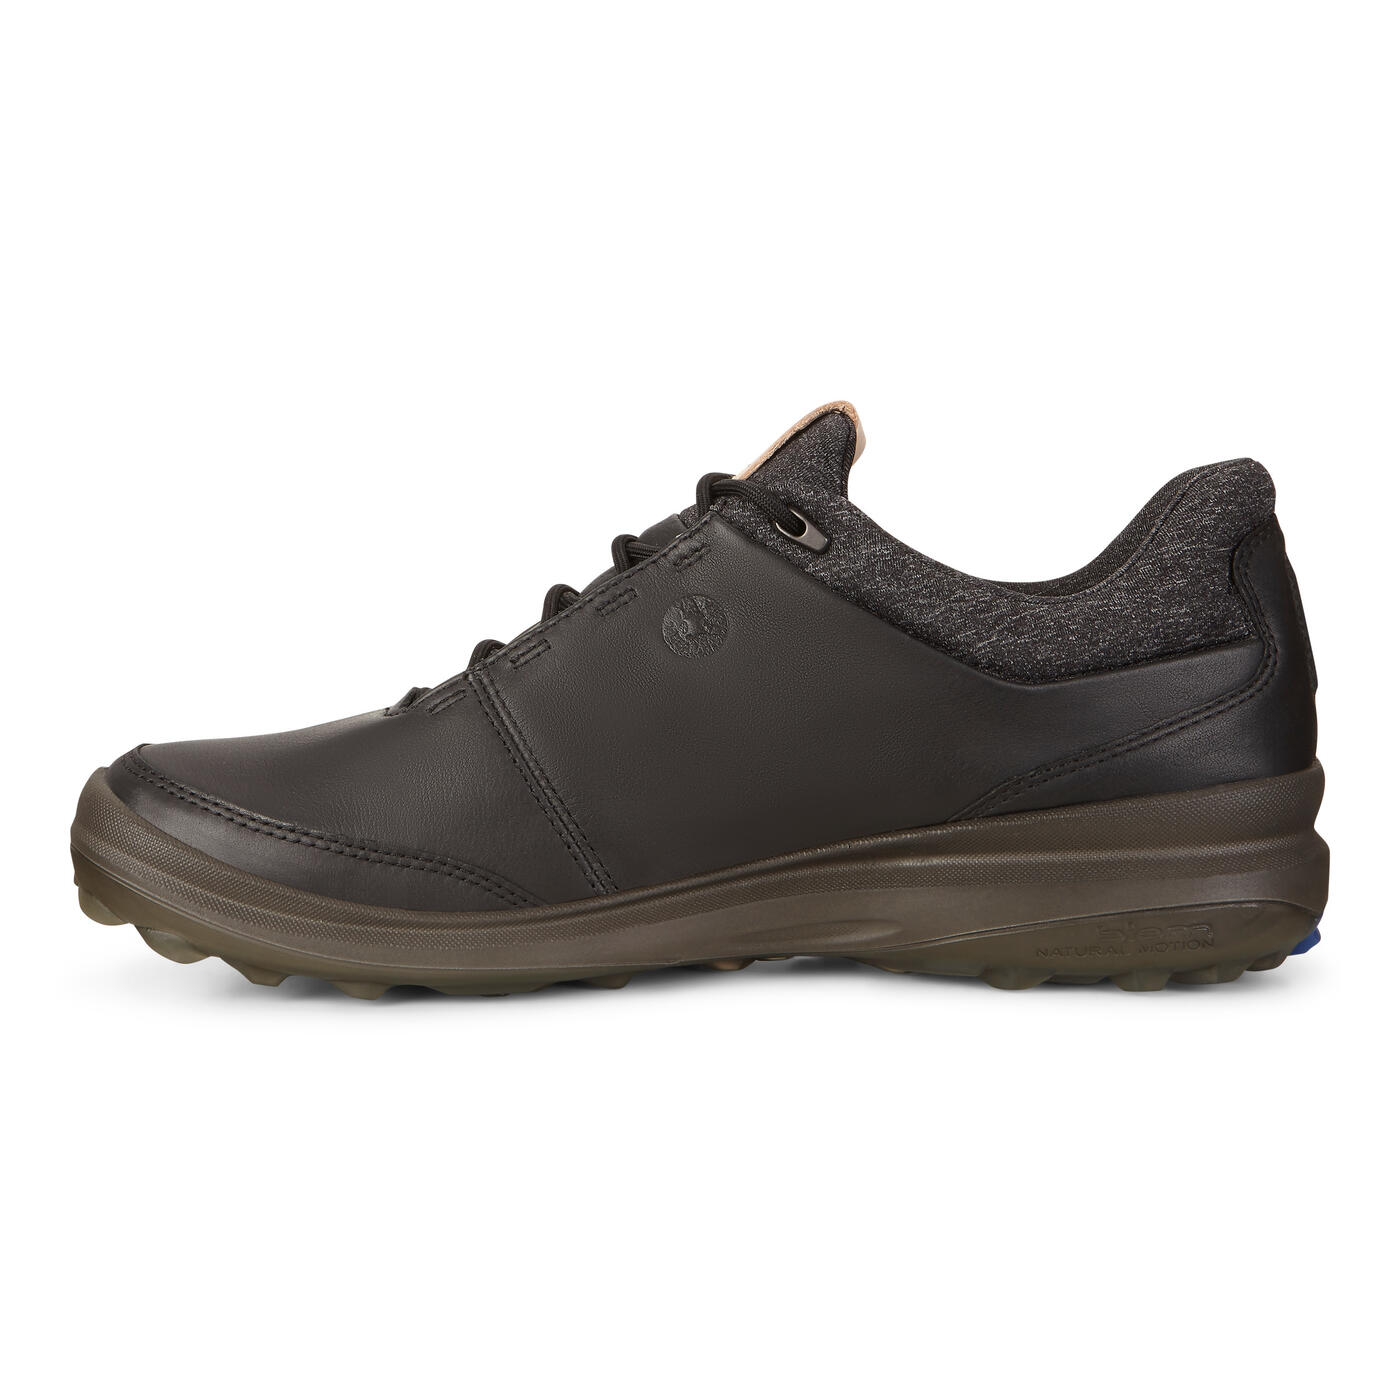 ECCO Men's Biom Hybrid 3 GTX Shoes